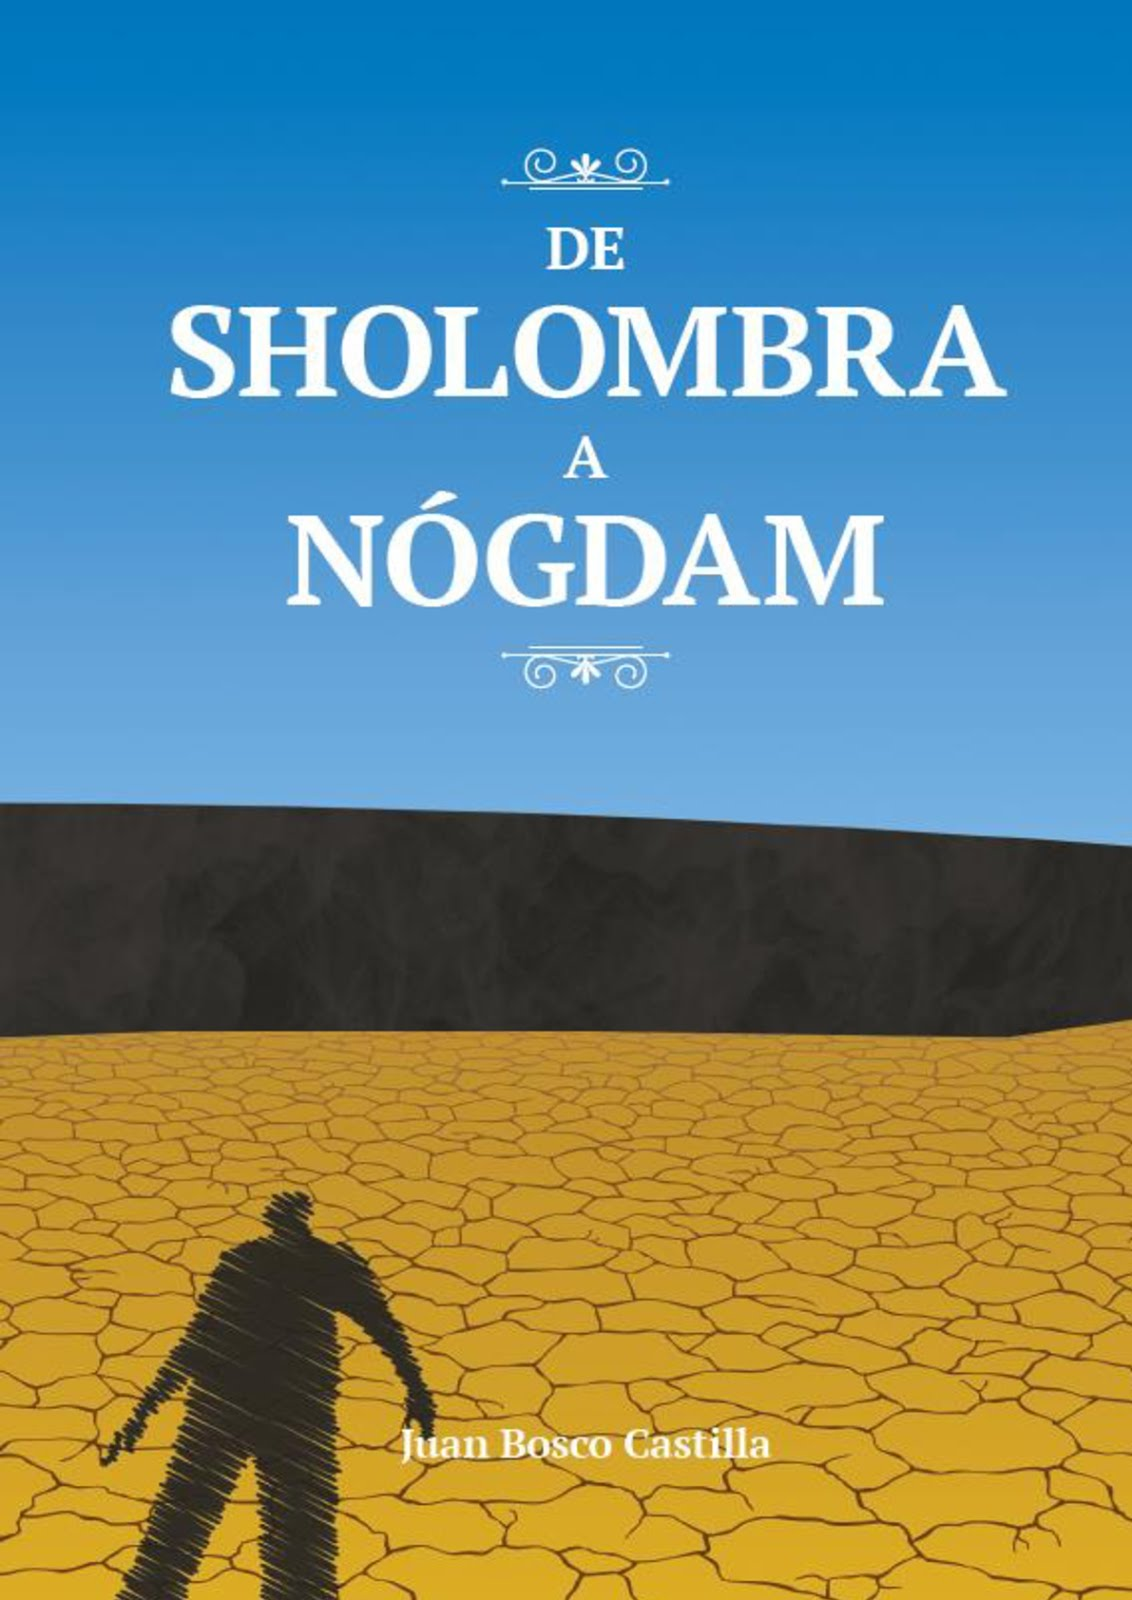 De Sholombra a Nógdam (Occidente 2)